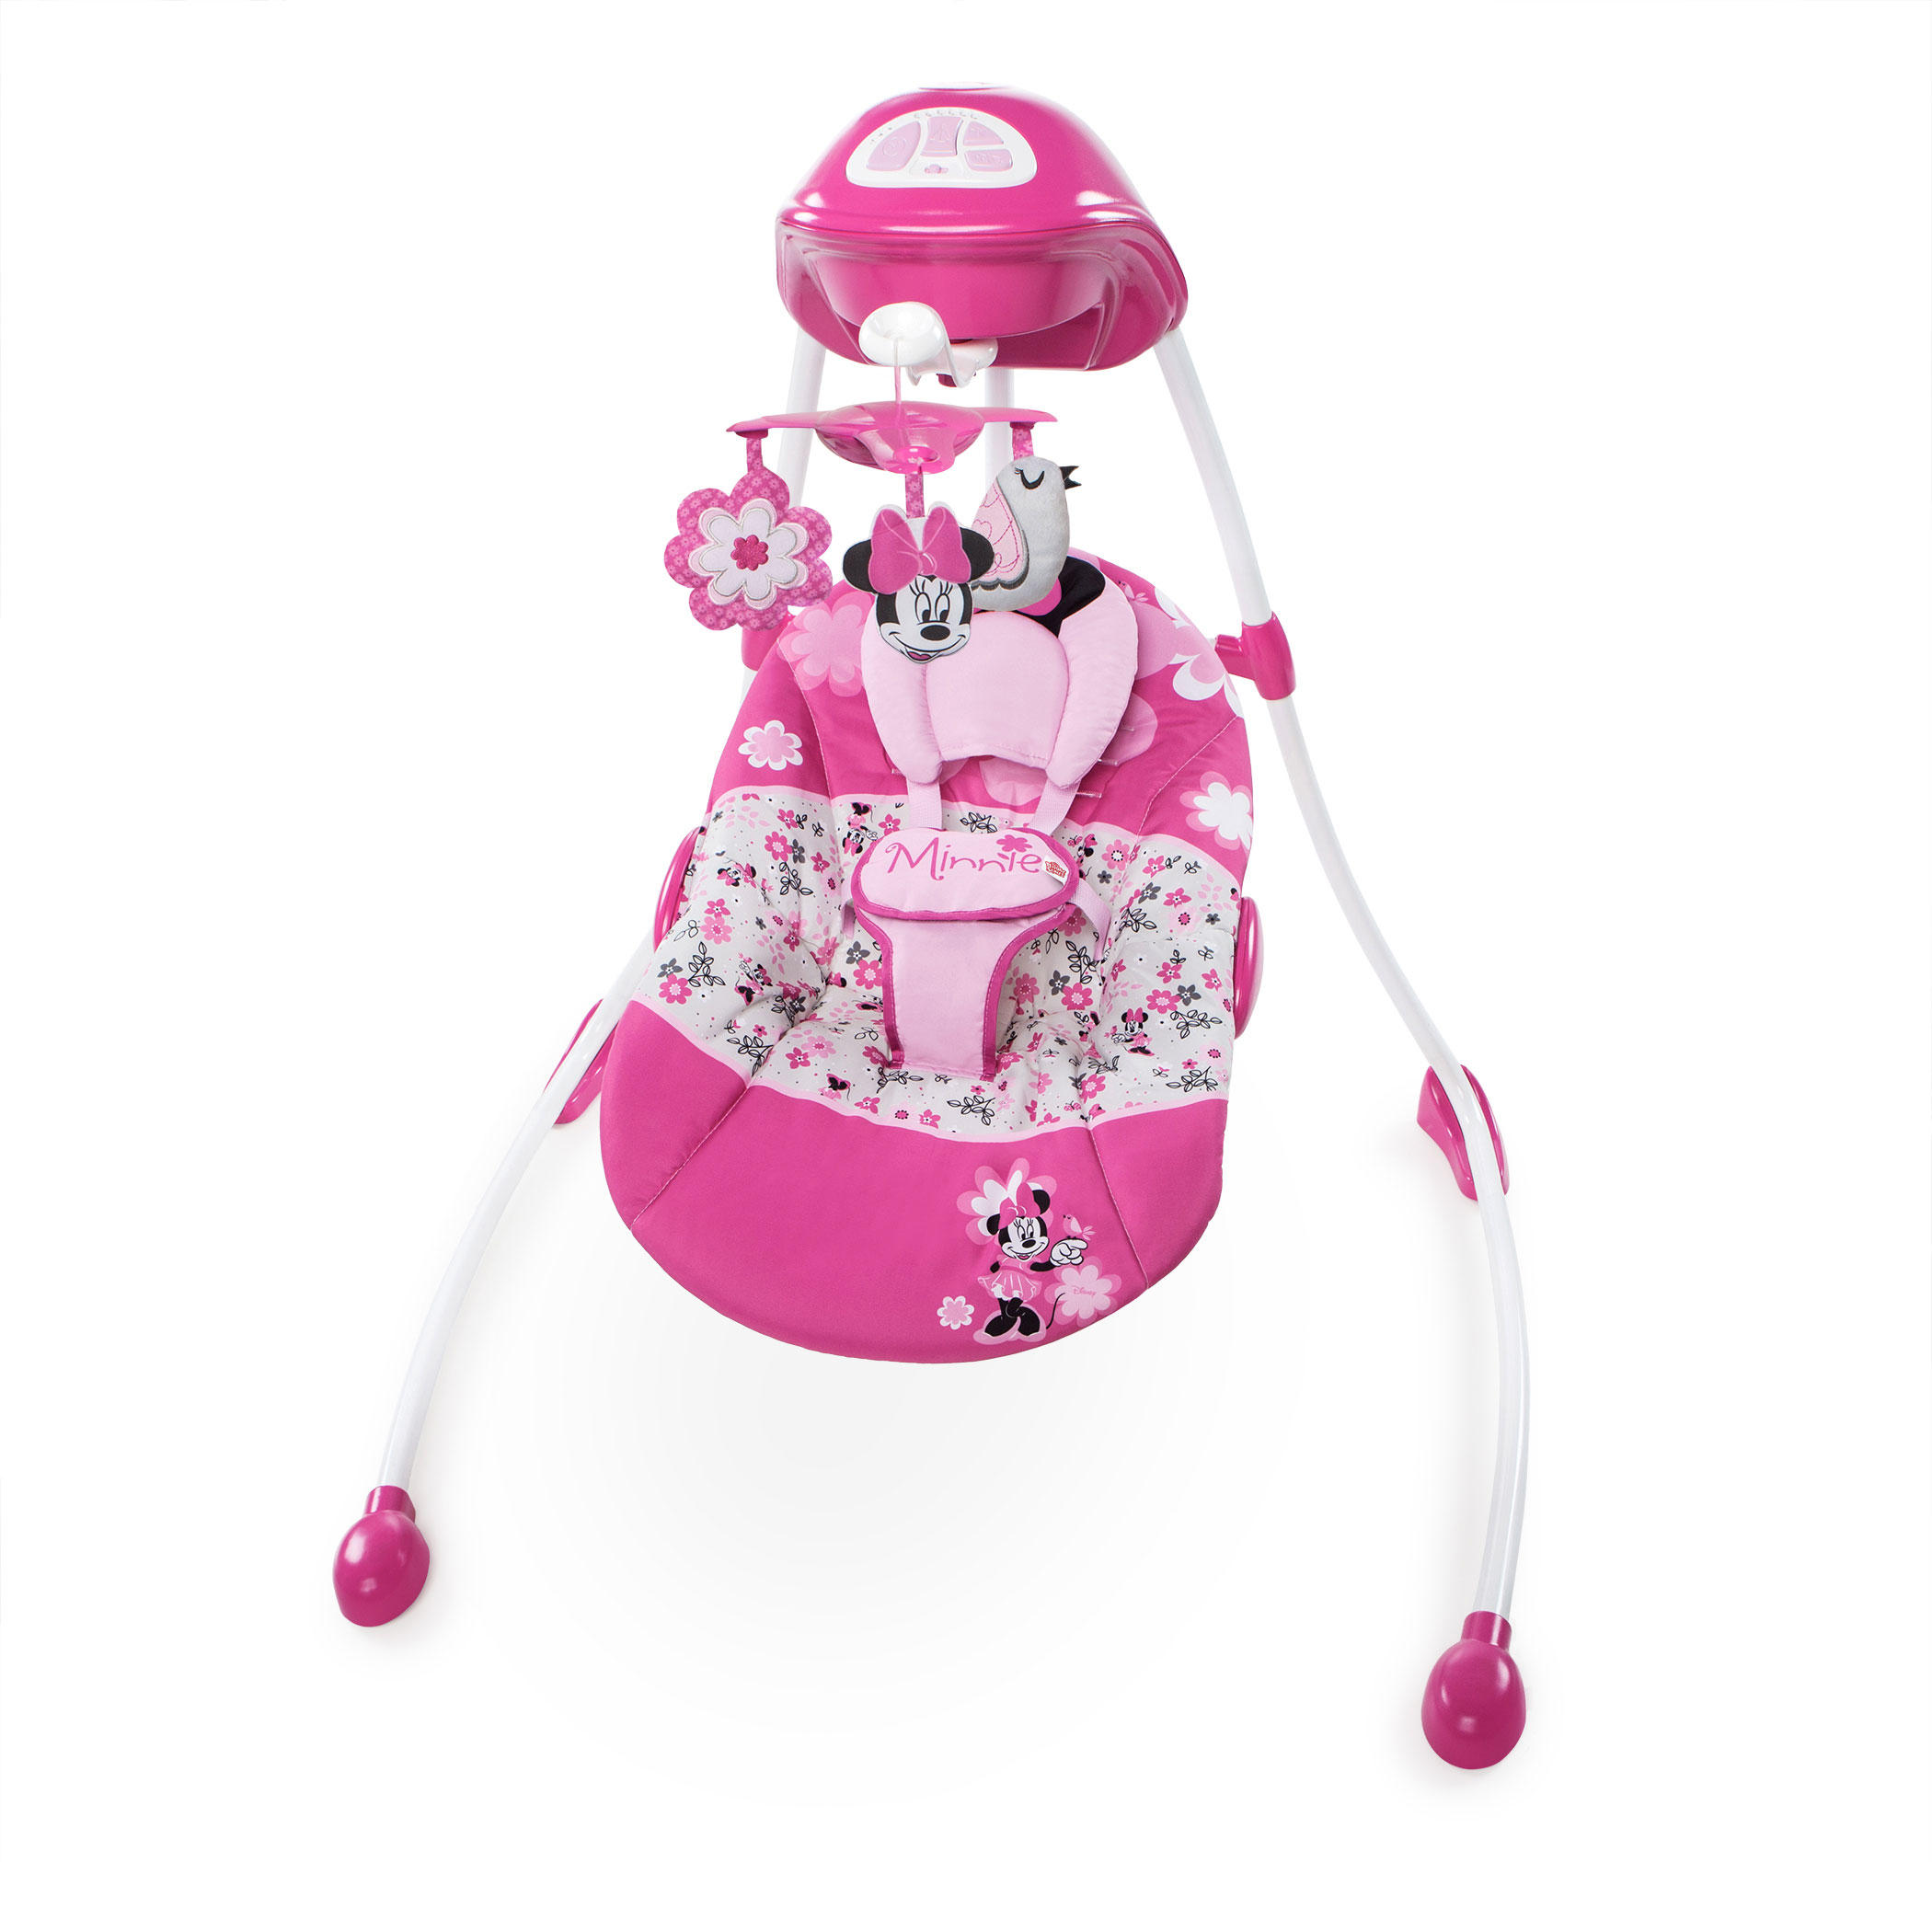 Disney Baby Minnie Mouse Garden Delights Swing